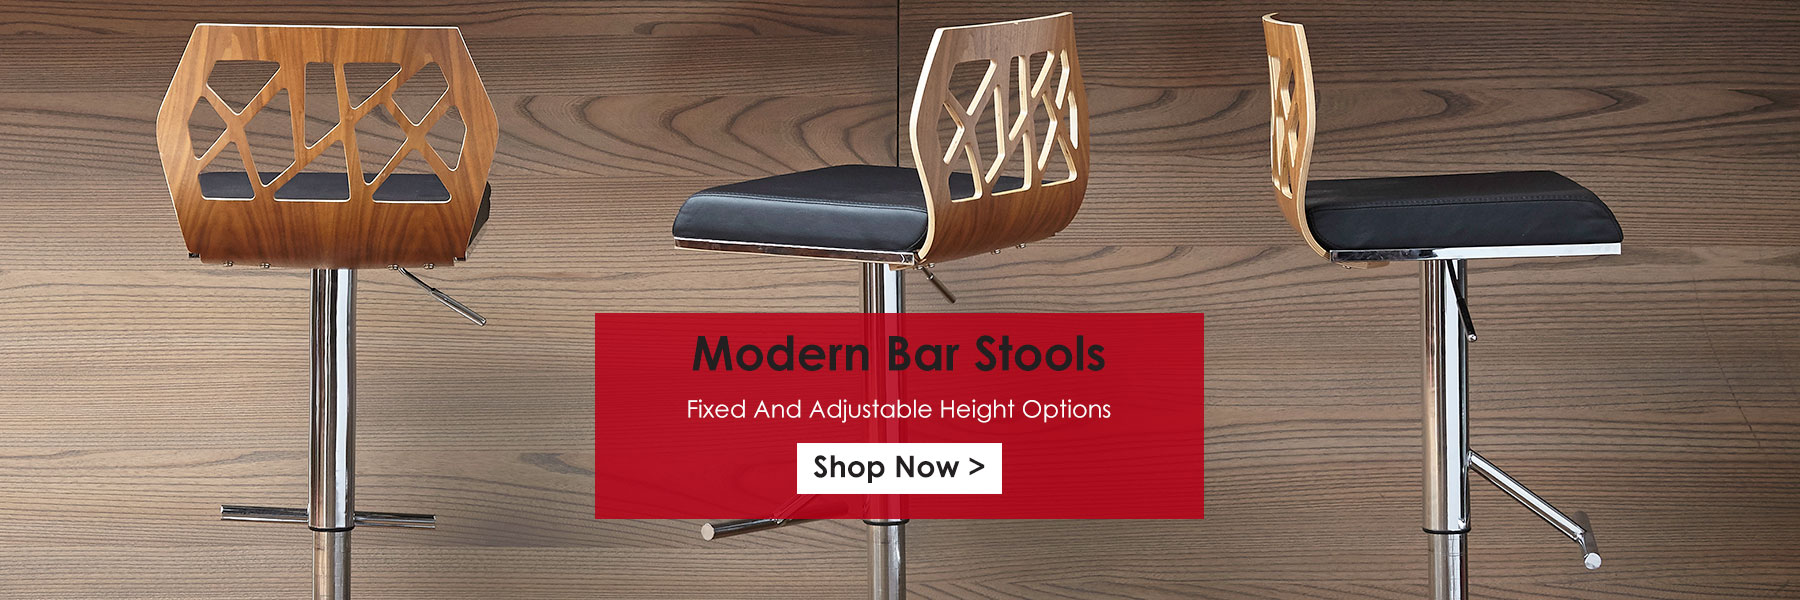 Shop For Modern Bar Stools and Adjustable Height Stools at Eurway.com >